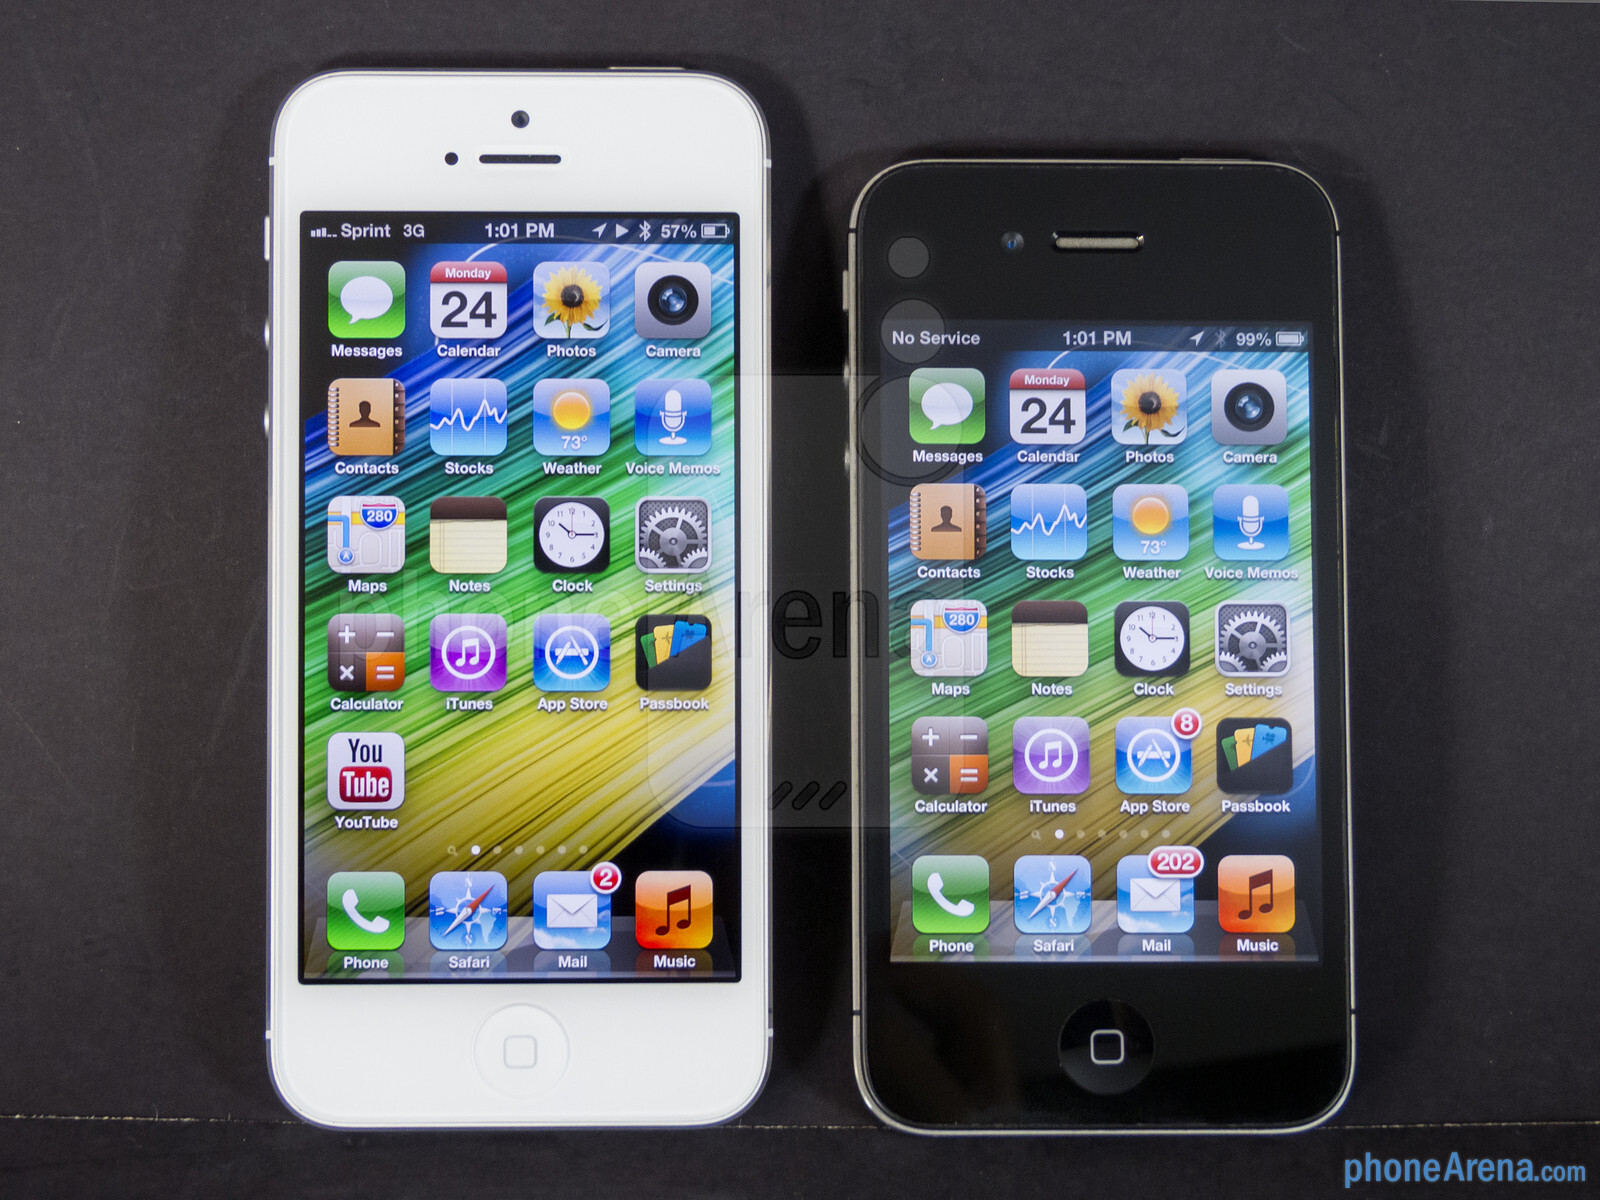 apple iphone 5 vs apple iphone 4s. Black Bedroom Furniture Sets. Home Design Ideas